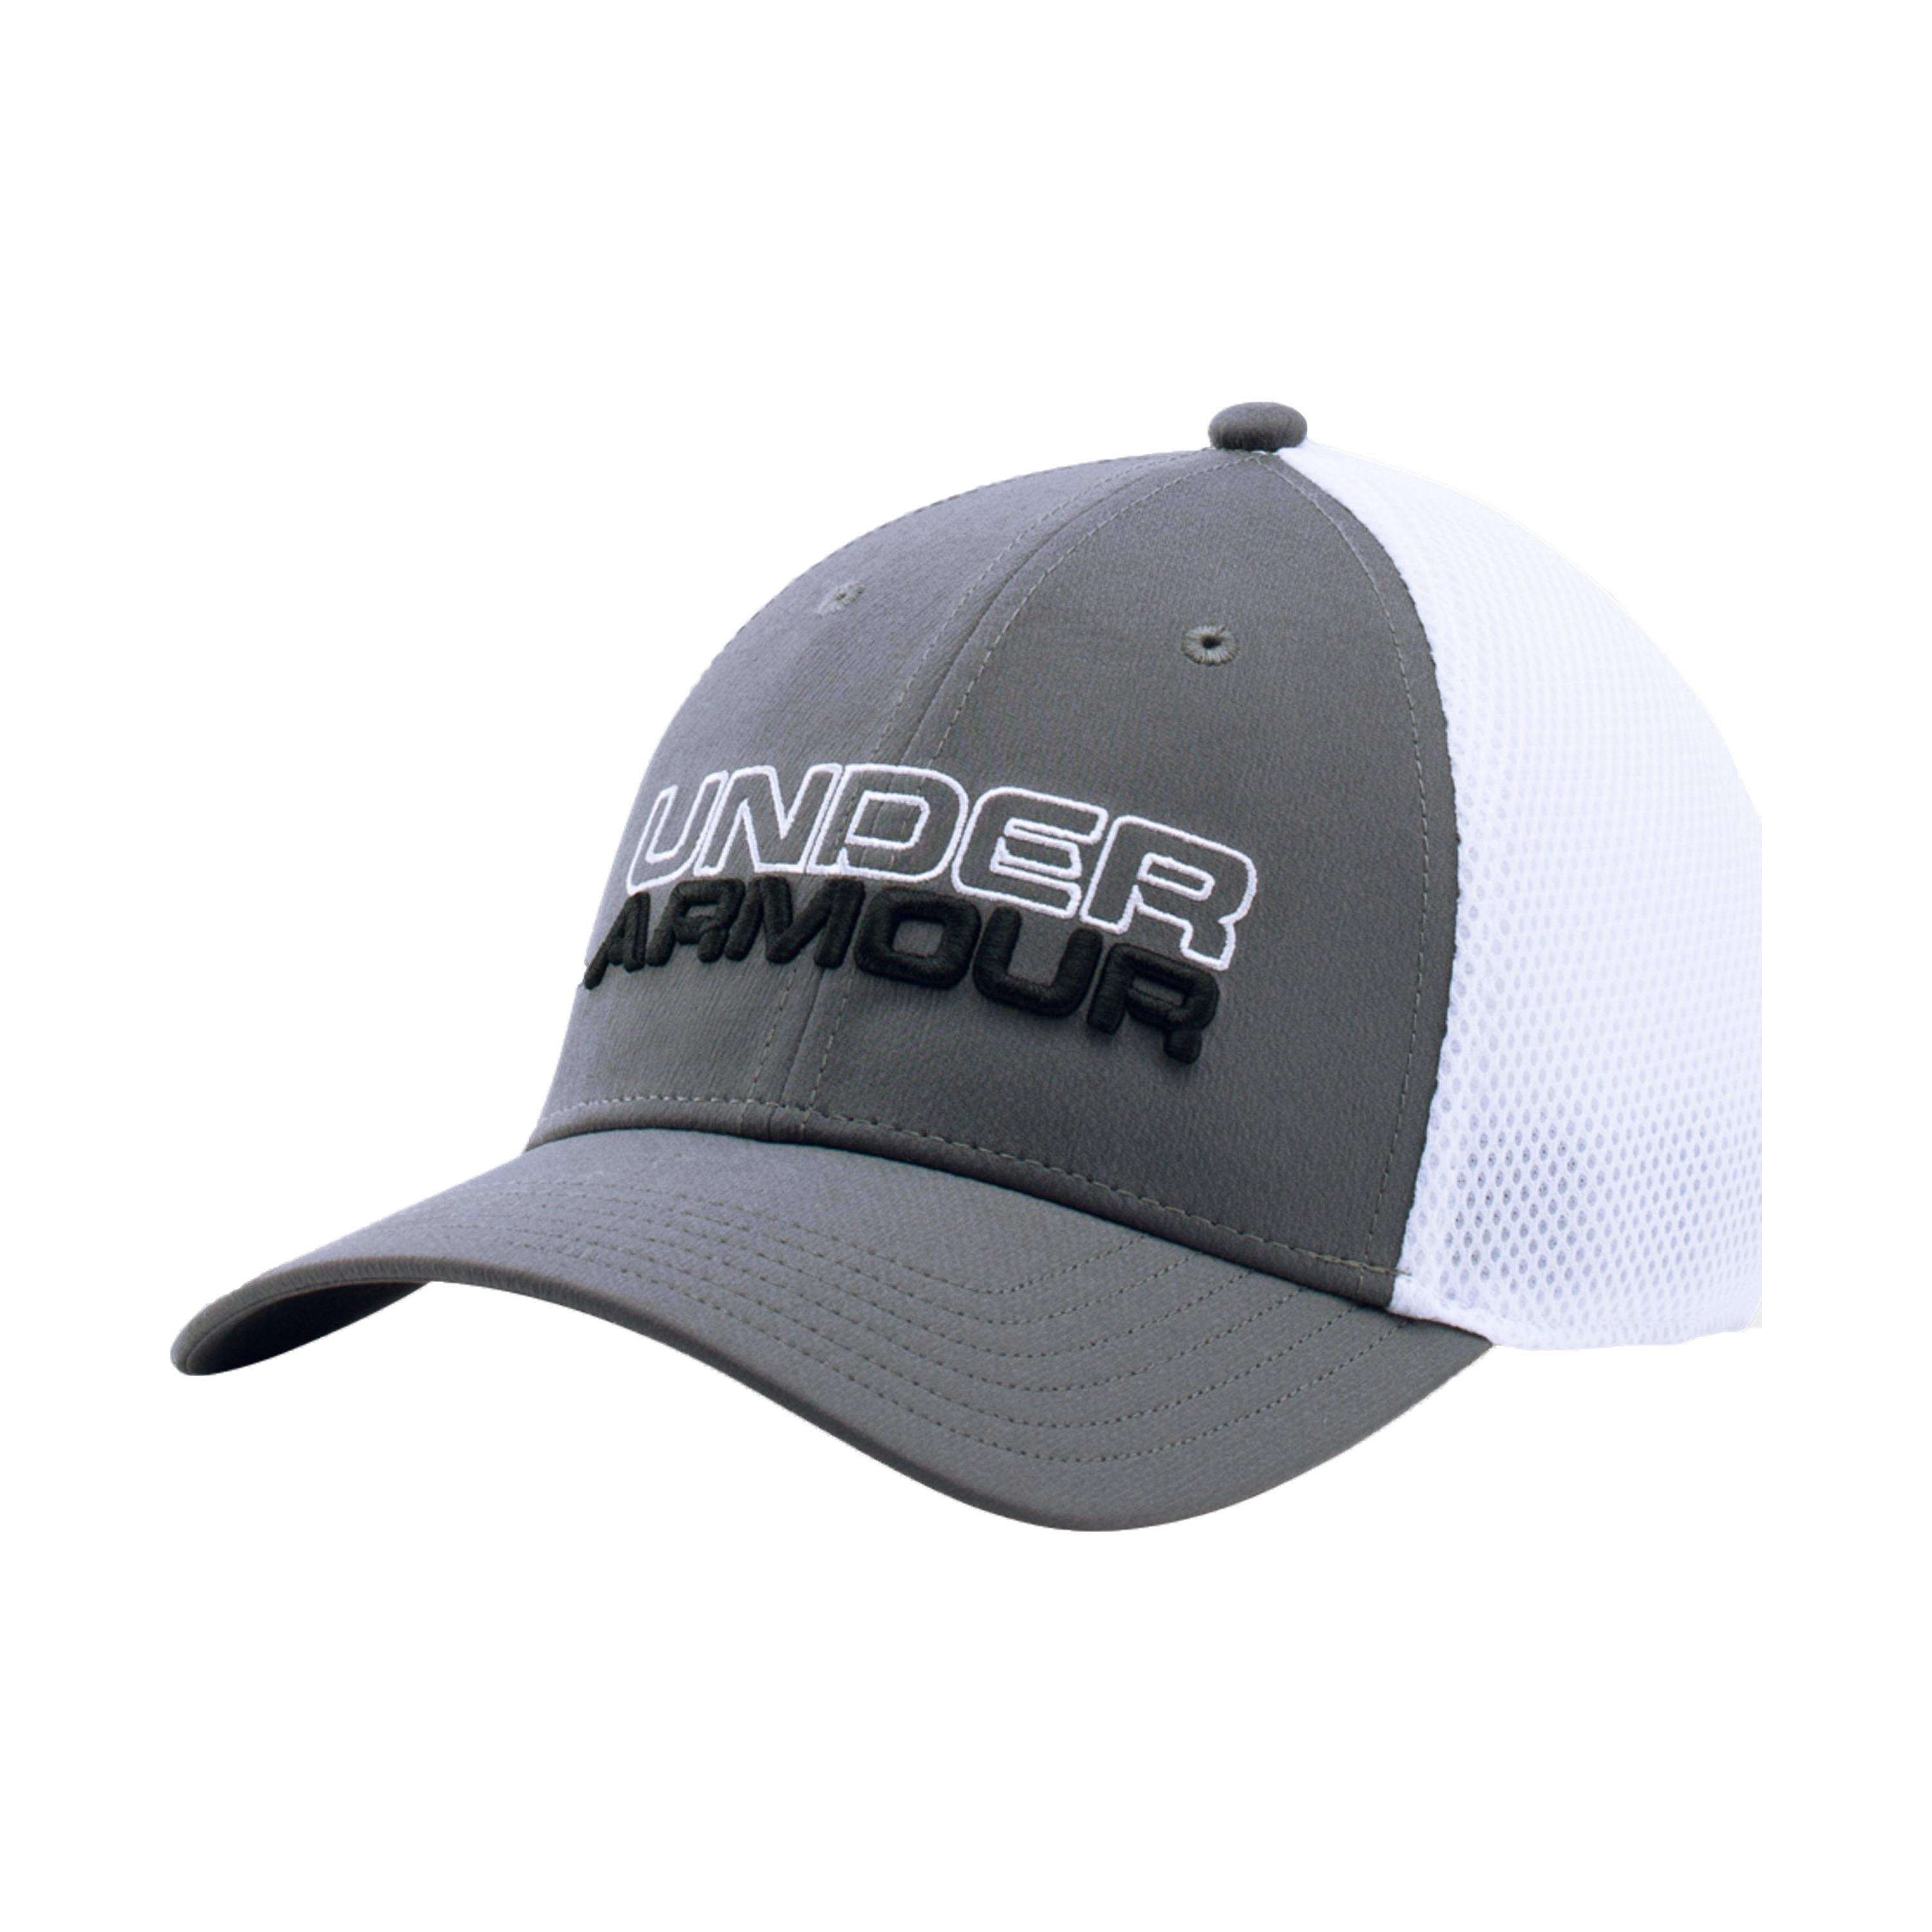 Under Armour Cap Mens Sports Style gray